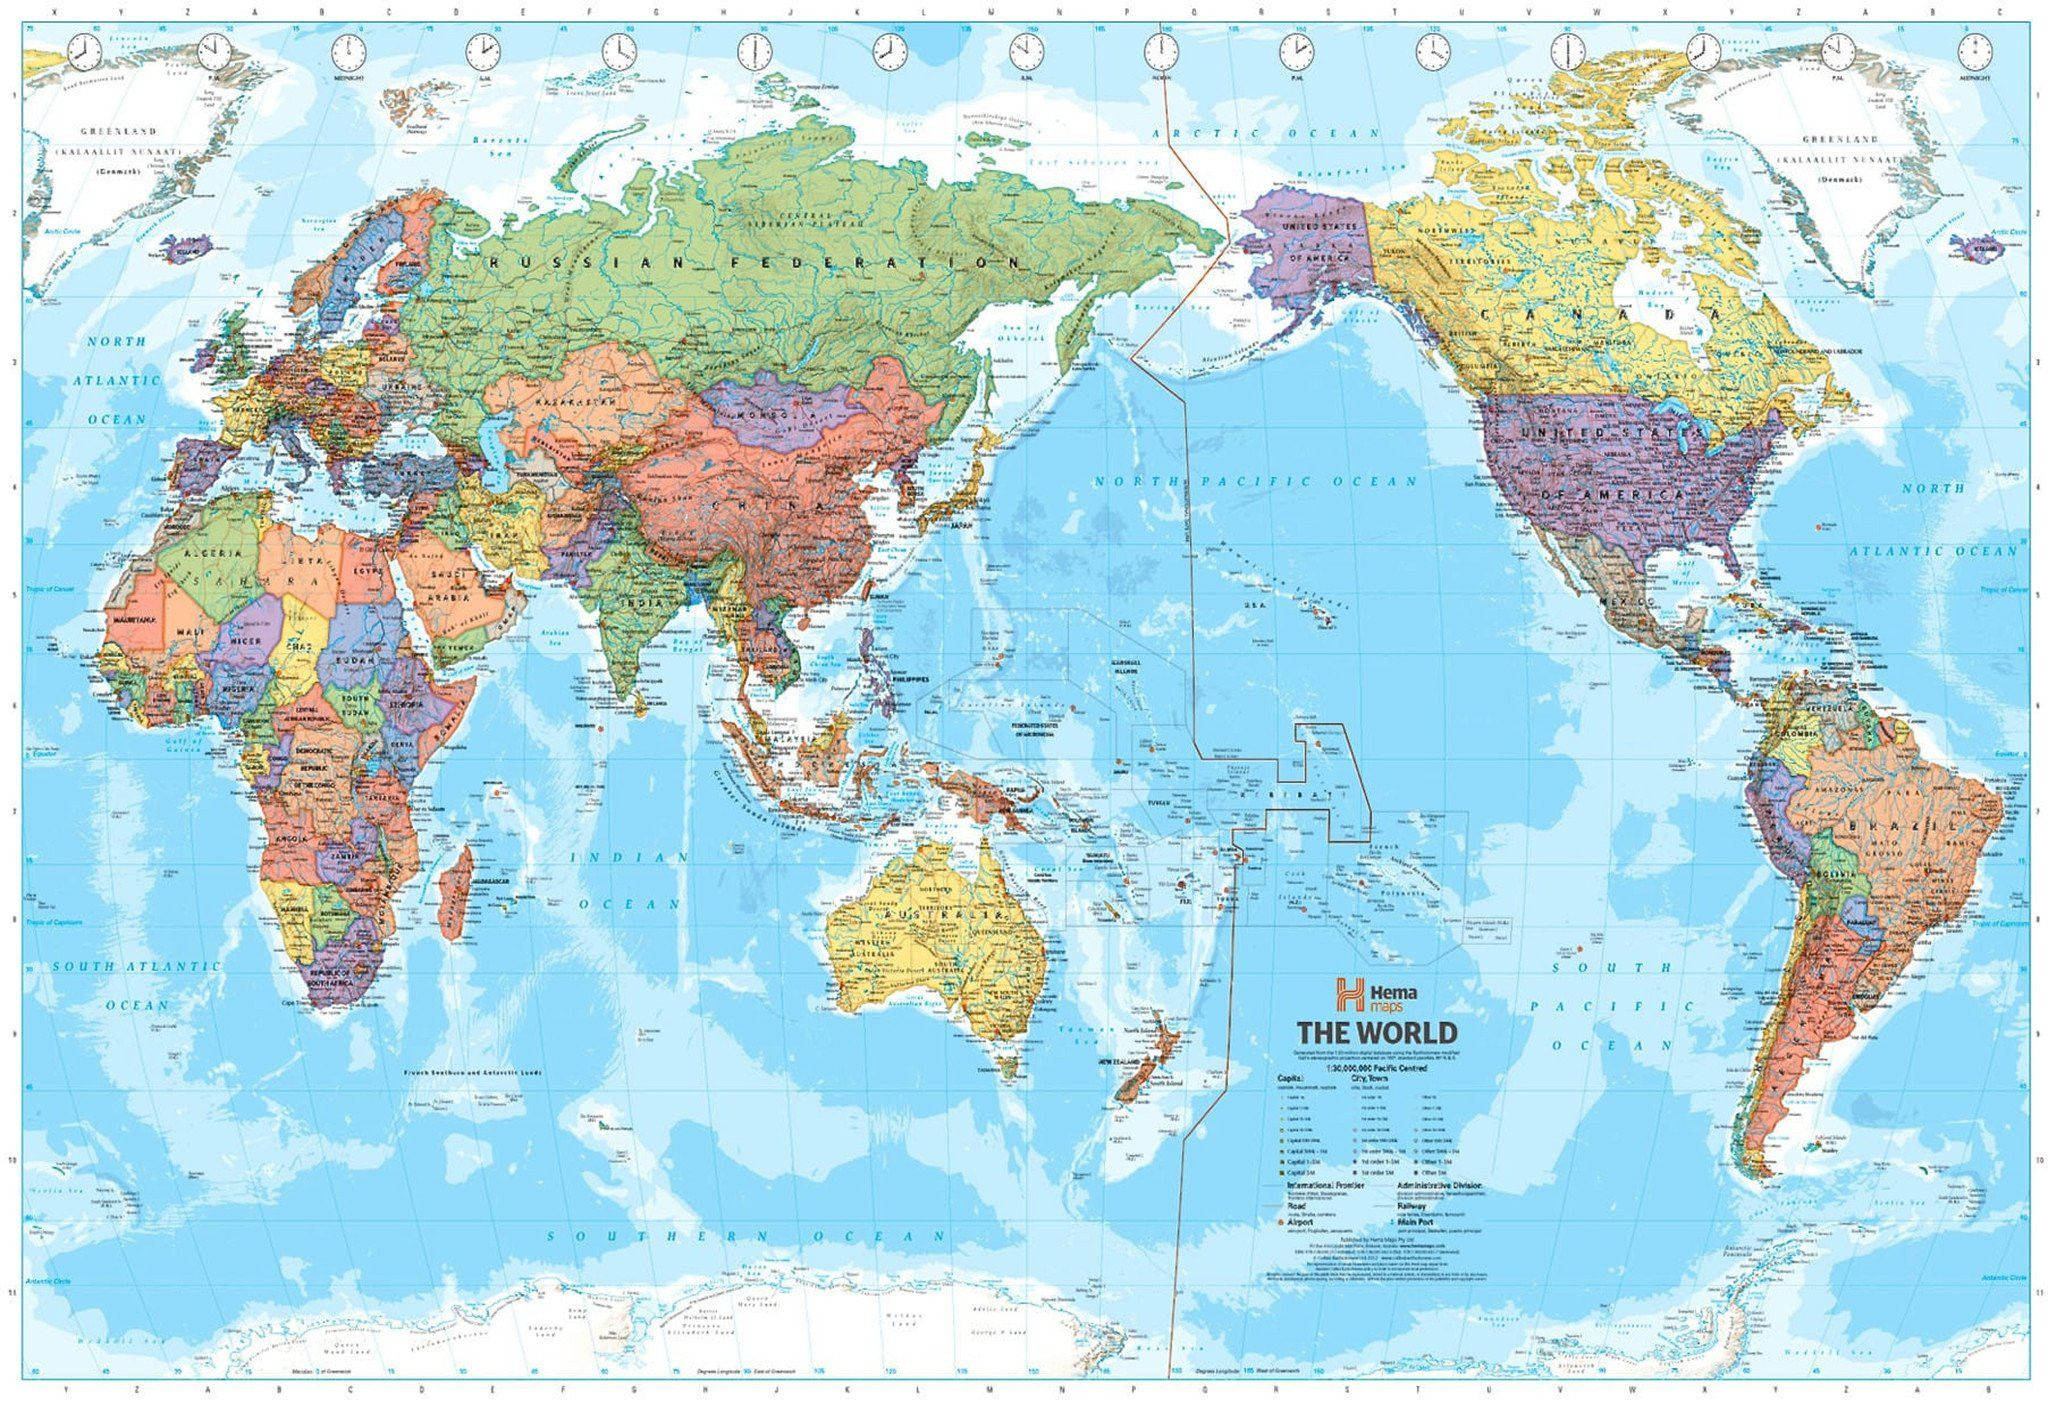 World Map Flipped.World Map Centered On Pacific Map City Map With Pacific Ocean In